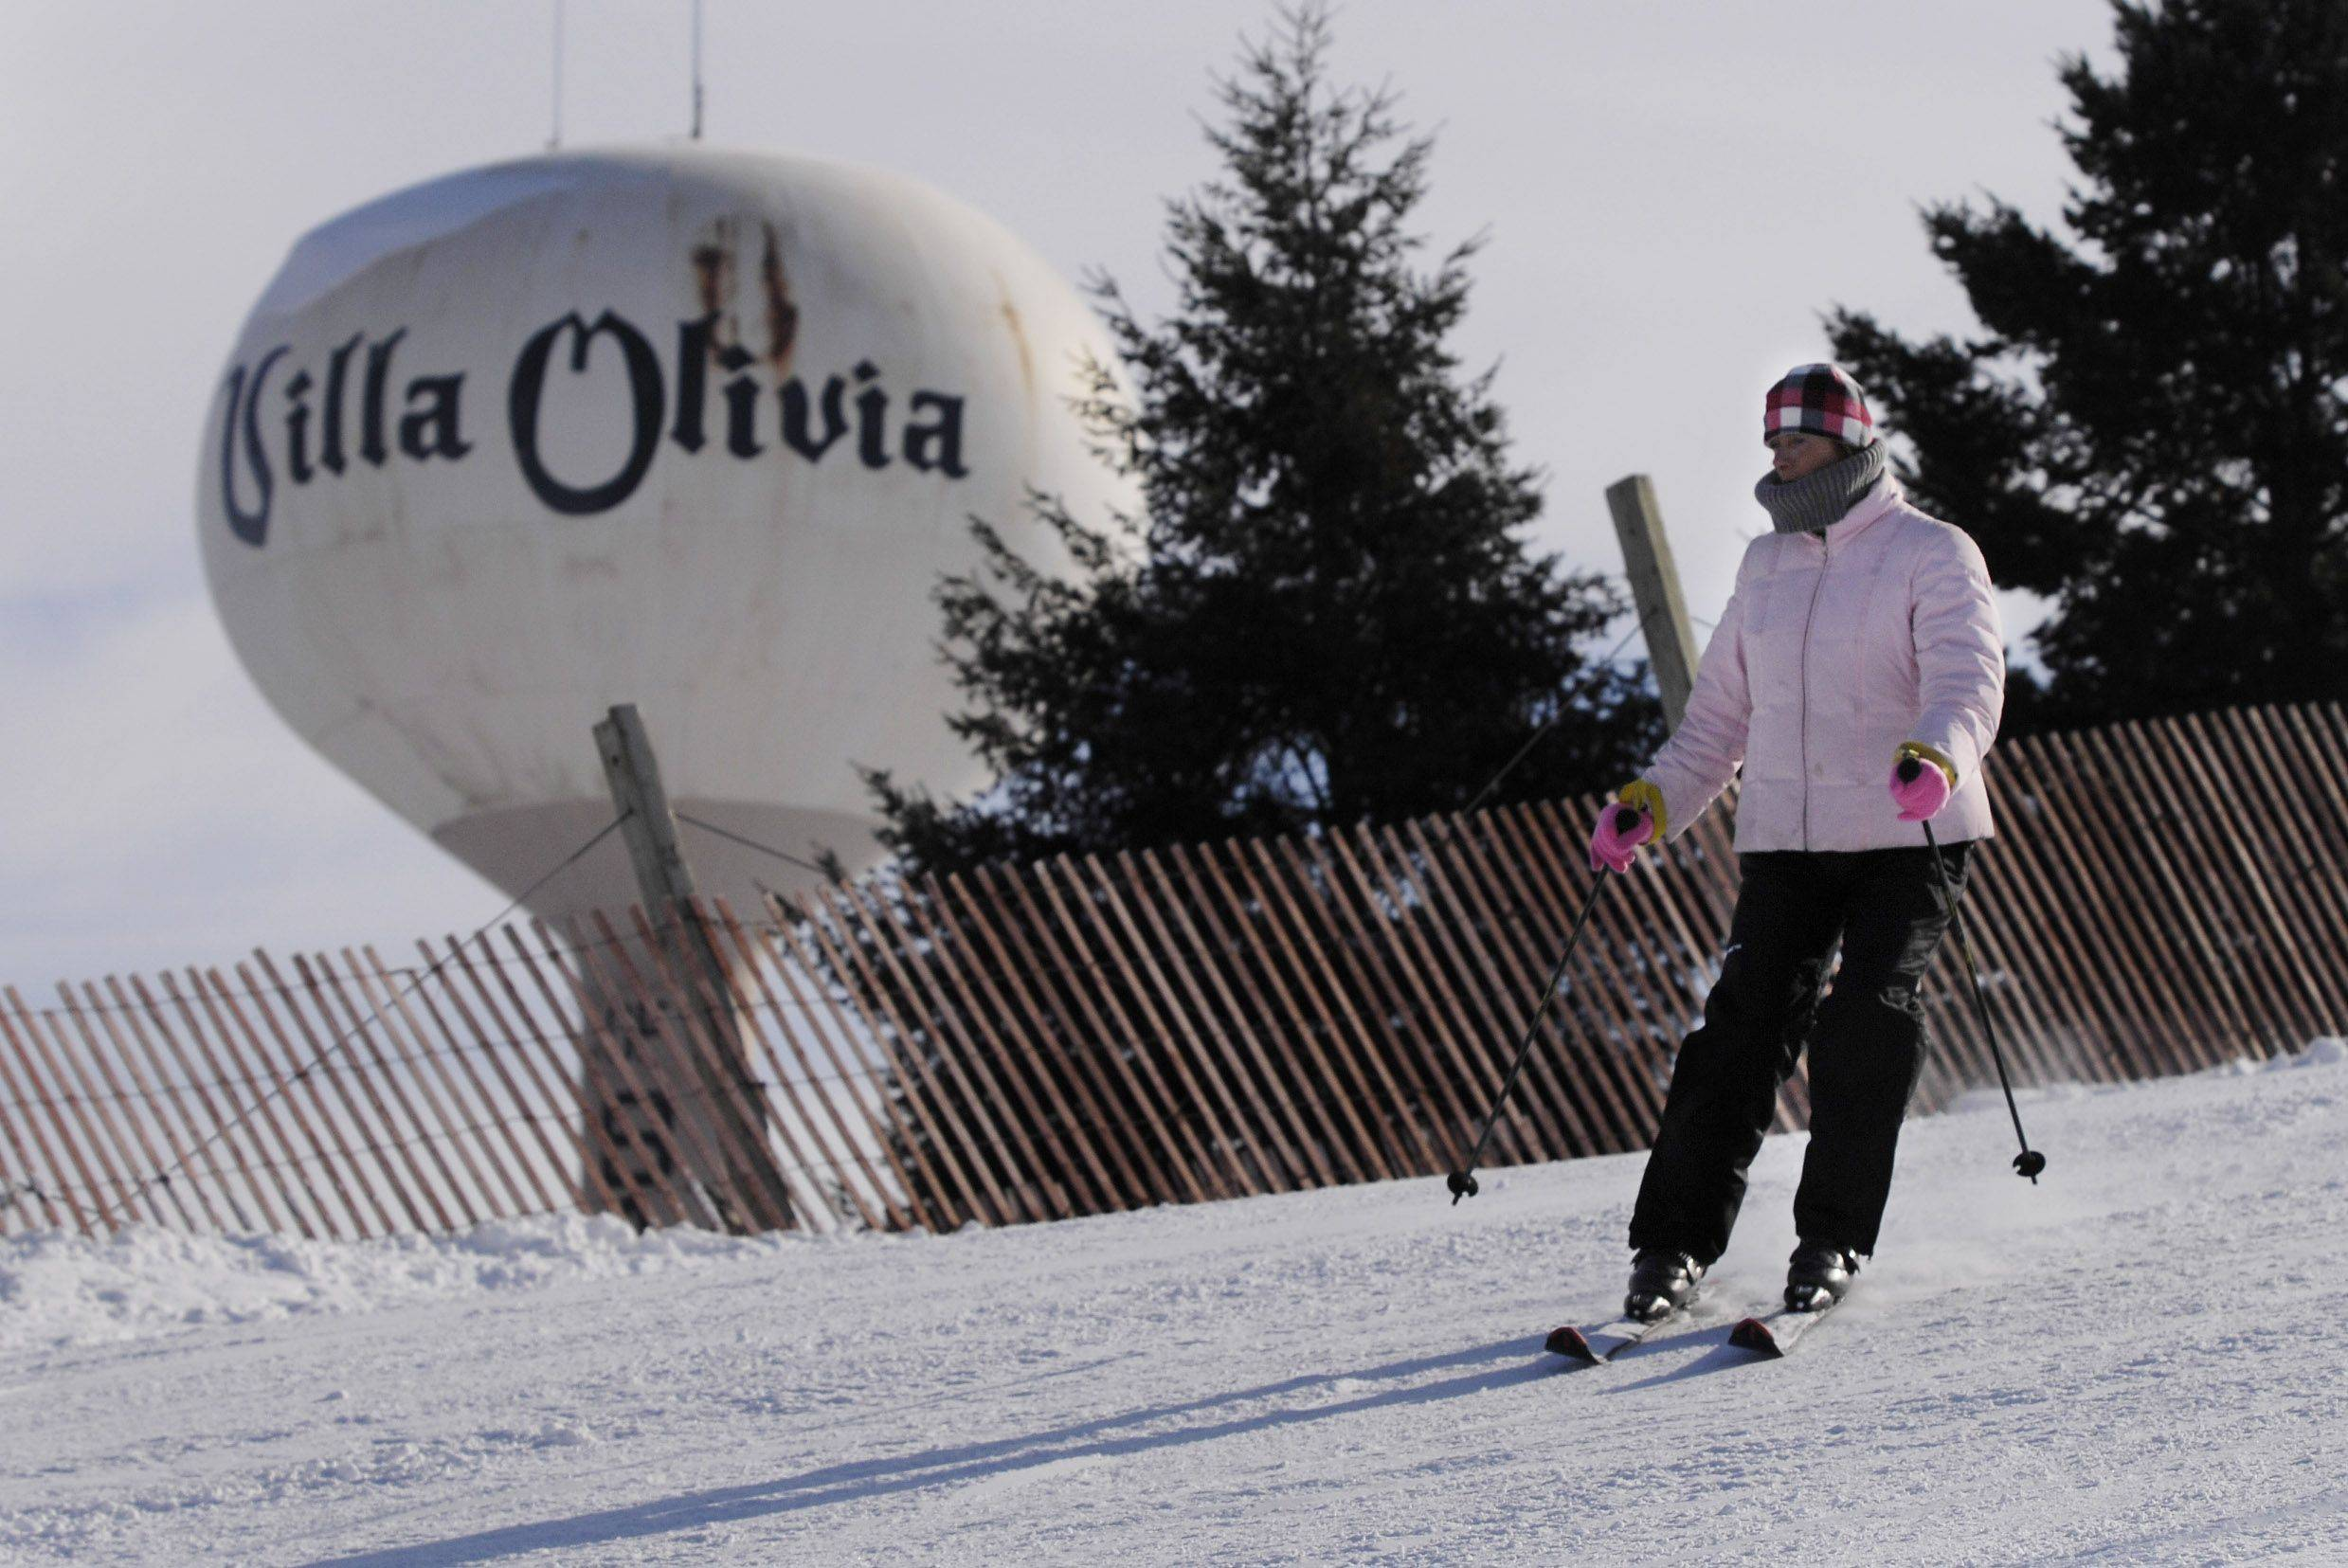 A skier makes her way down the run at Villa Olivia Country Club, which the Bartlett Park District plans to purchase if voters next week approve an $18 million bond issue.